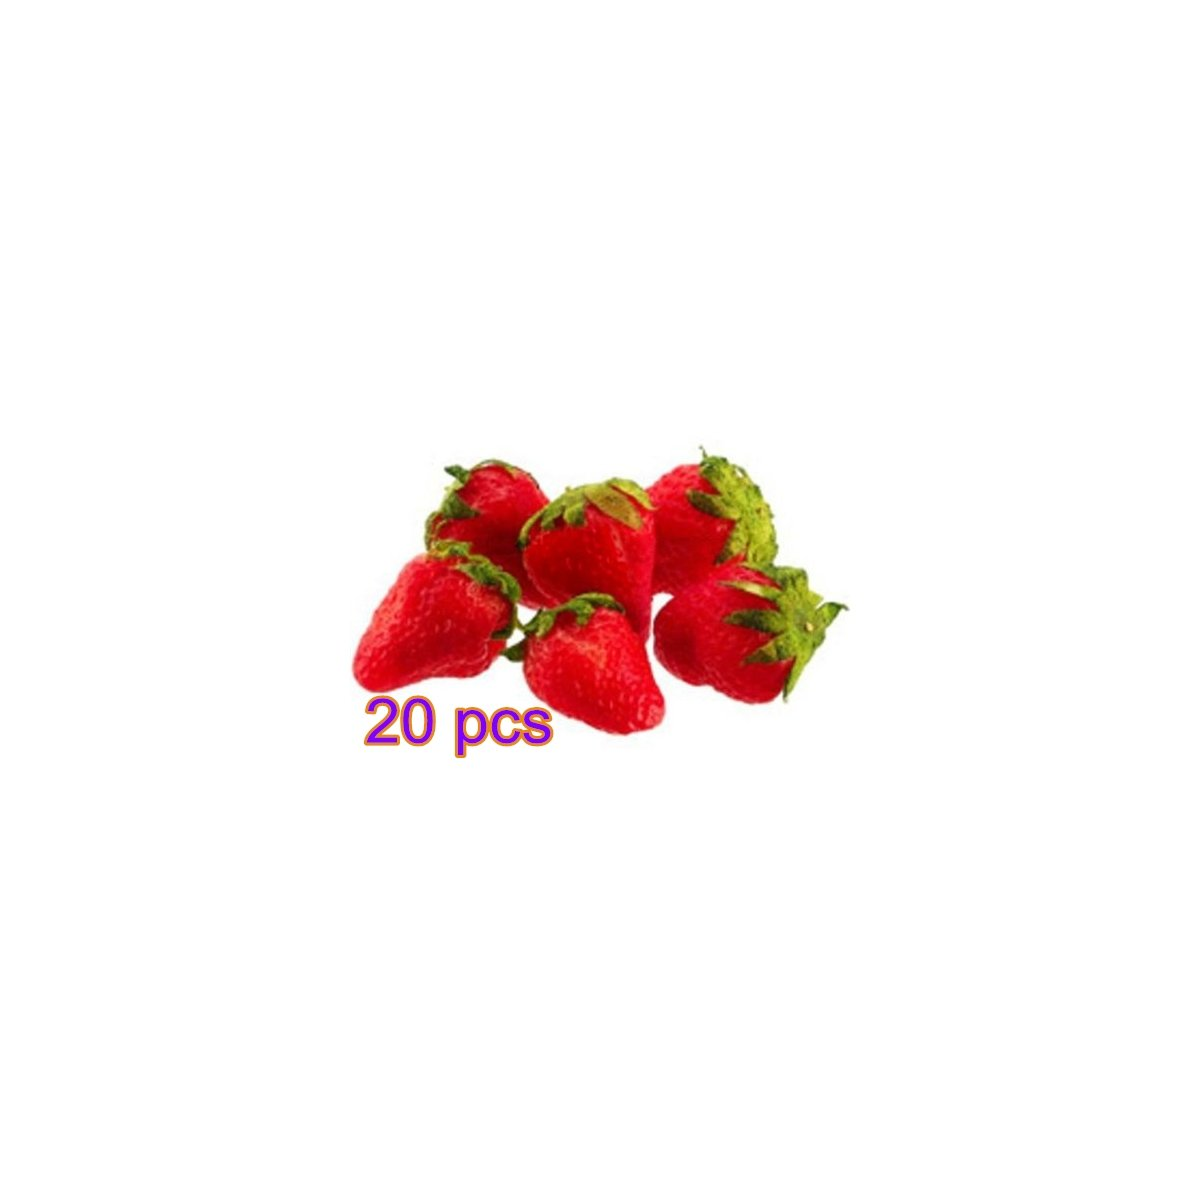 Fendii 20PCS Artificial Fake Food Fruit Strawberry 3cm*2.5cm